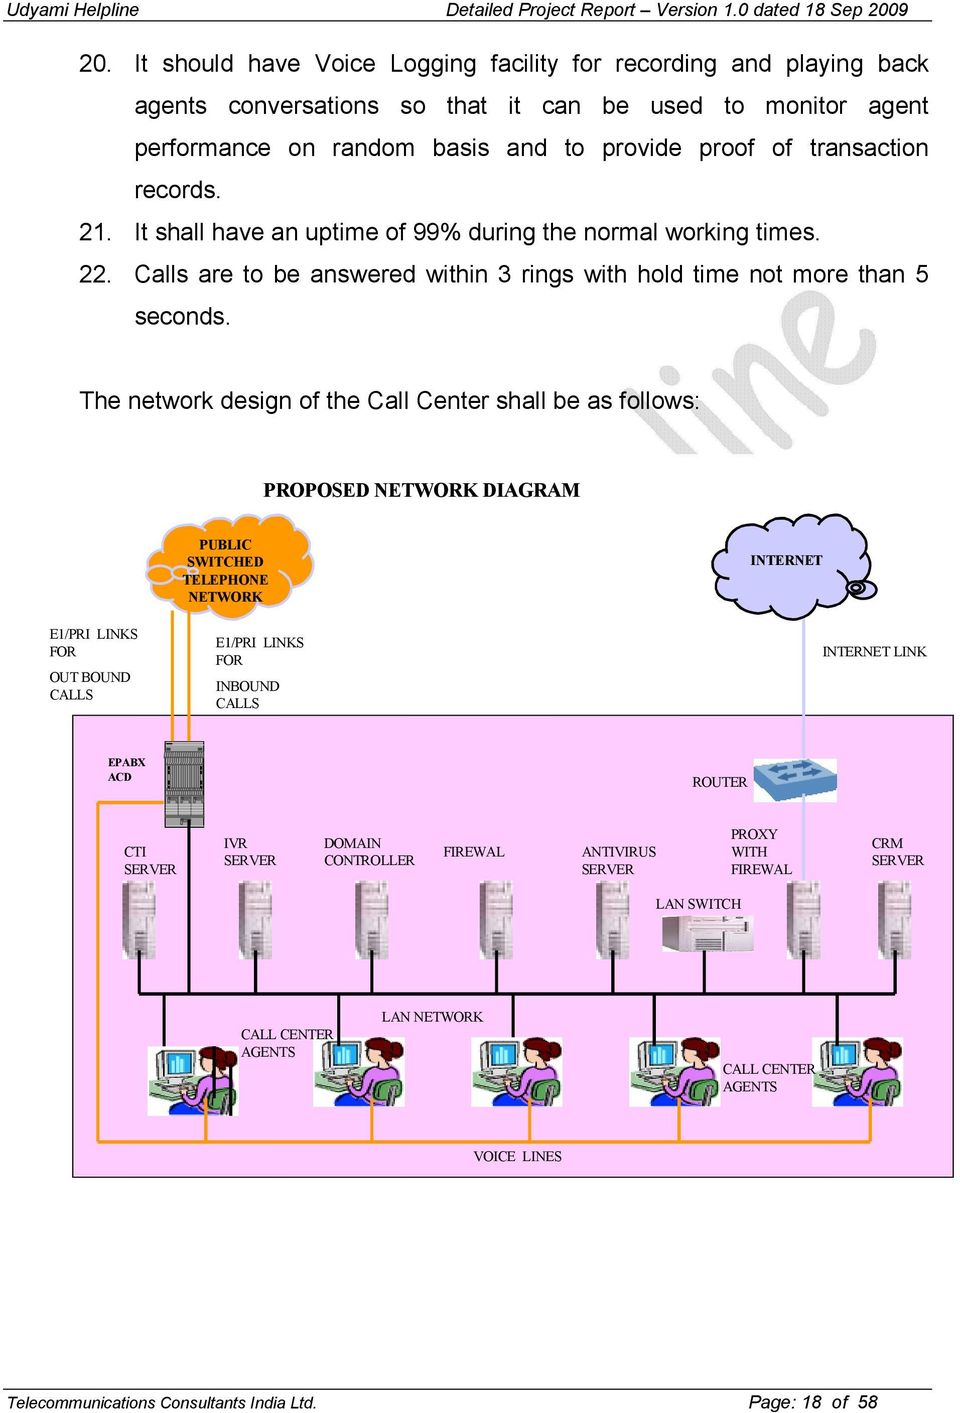 The network design of the Call Center shall be as follows: PROPOSED ETWORK DIAGRAM E1/PRI LINKS FOR OUT BOUND CALLS PUBLIC SWITCHED TELEPHO E ETWORK E1/PRI LINKS FOR INBOUND CALLS I TER ET INTERNET